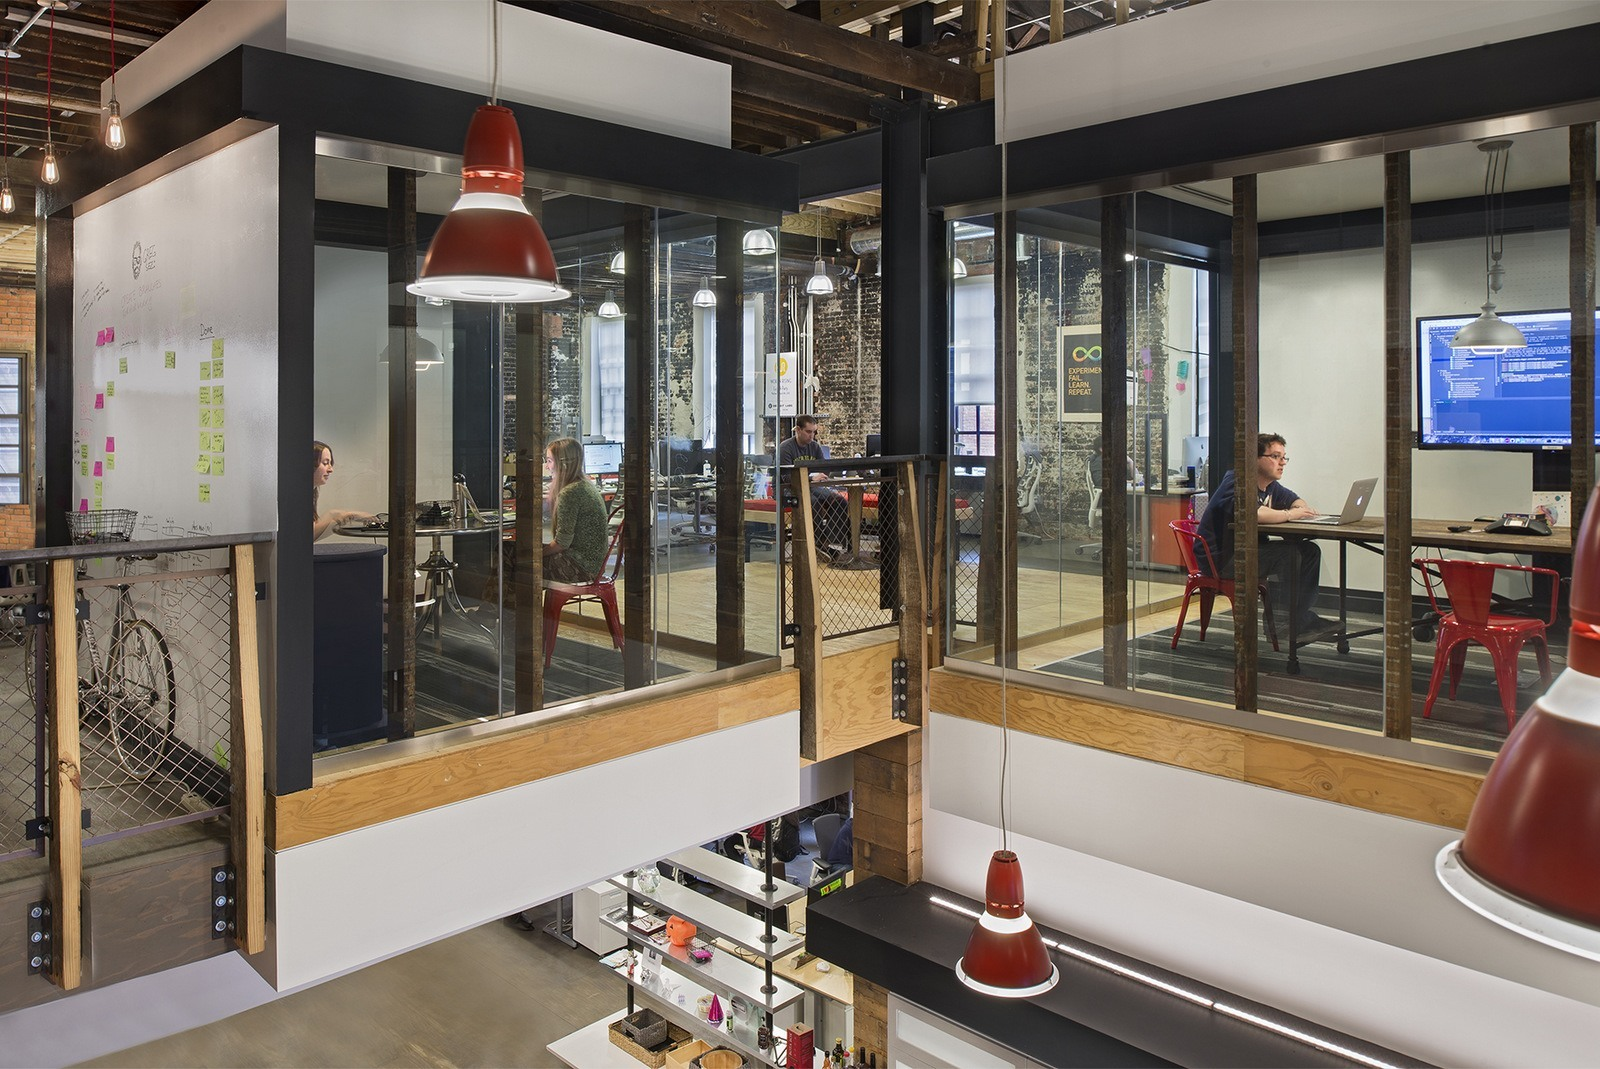 Check out photos of detroit labs cool office officelovin 39 for Cool office pictures